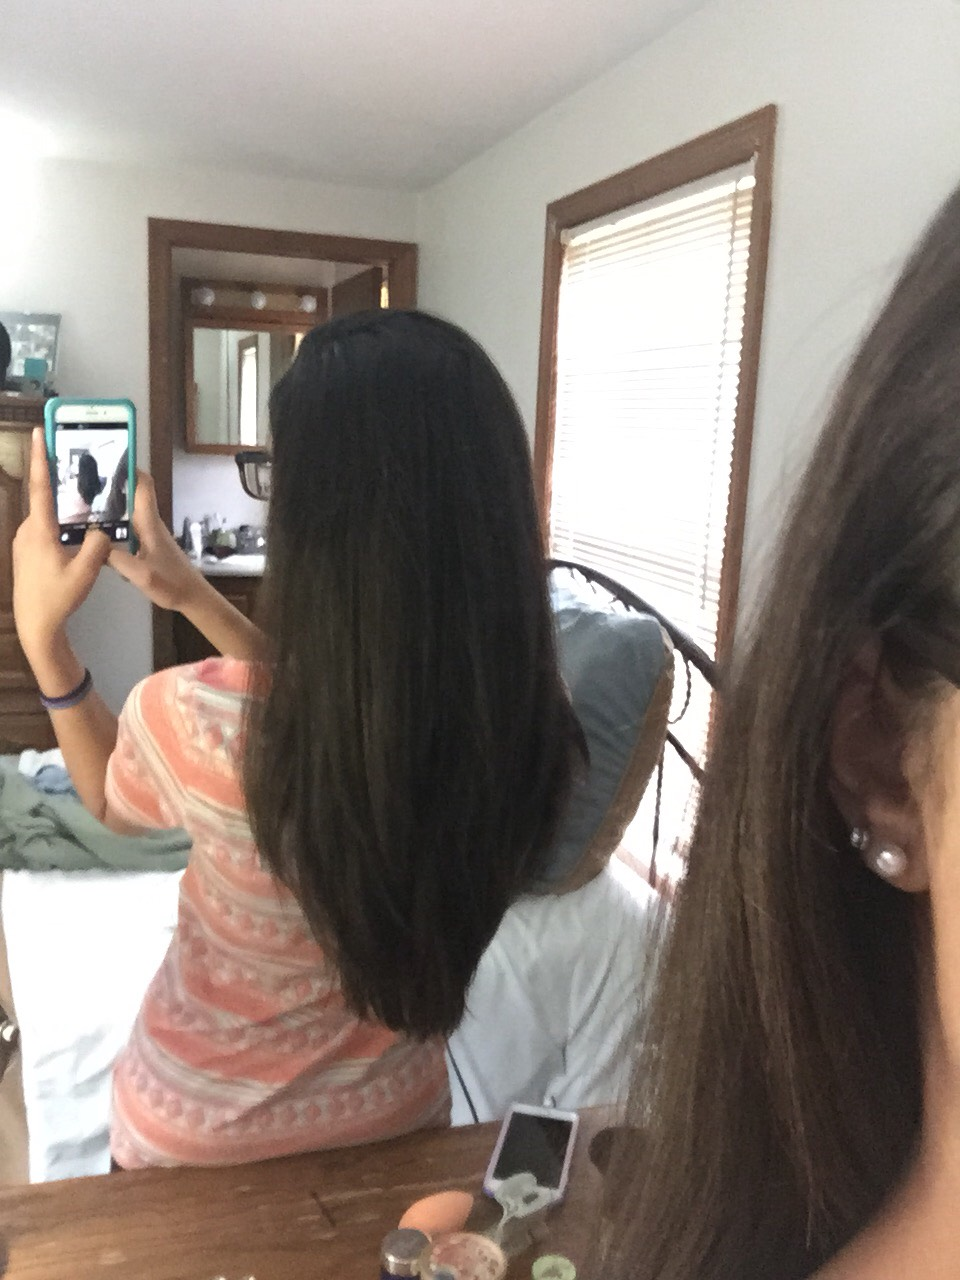 This is my hair length. My hair is also pretty thick. I use 2 eggs, 1/3 cup of olive oil, and 1 teaspoon of mint extract or cinnamon. Adjust the measurements based on the length and thickness of your hair.